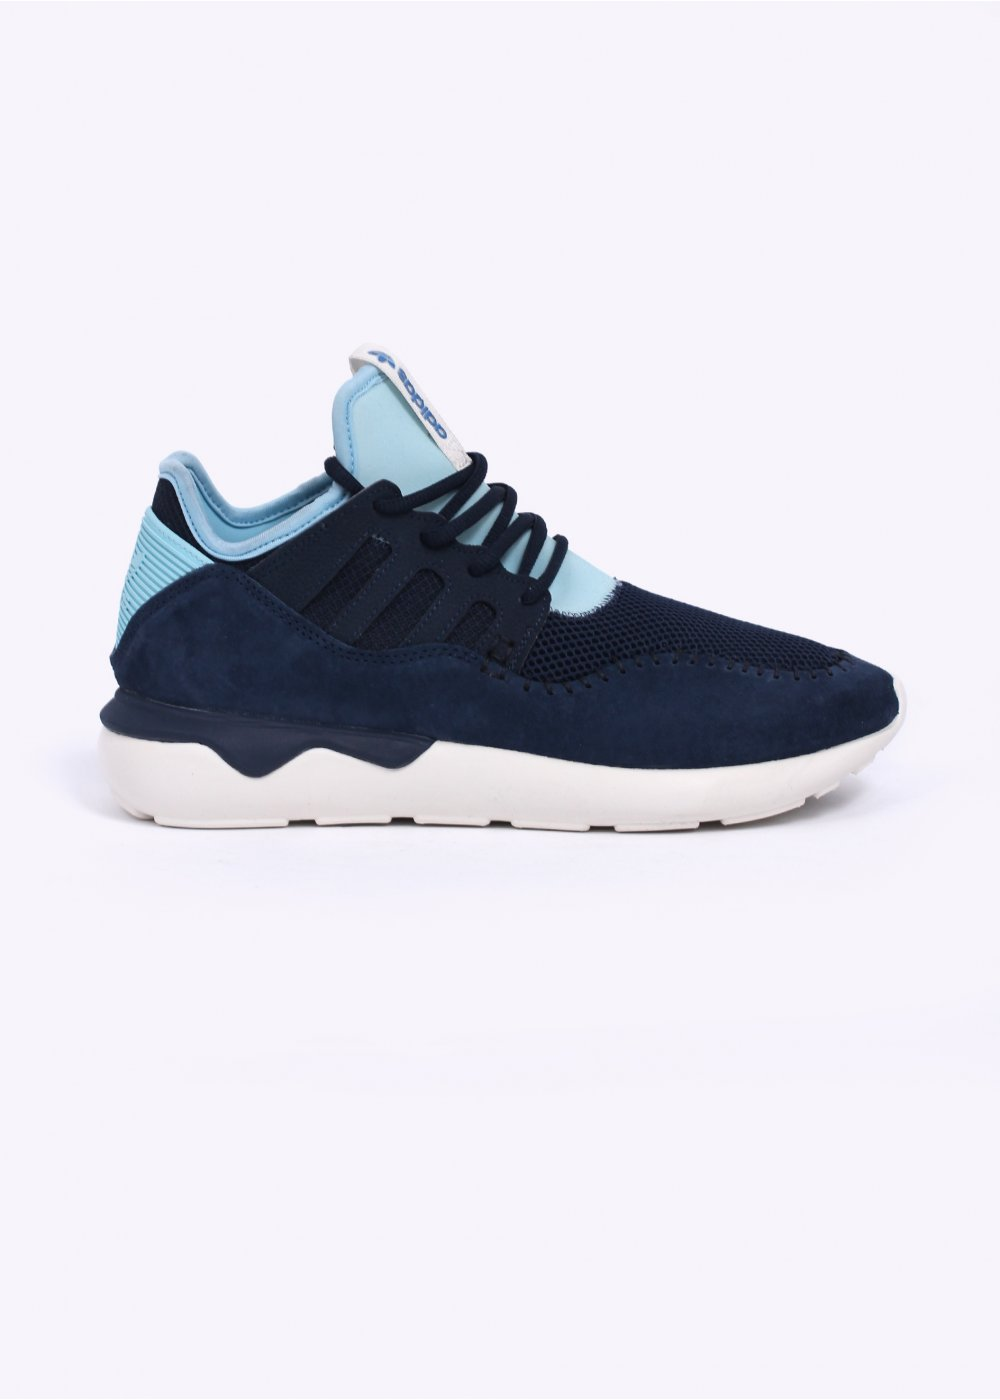 Adidas Originals Tubular Moc Runner Suede Collection